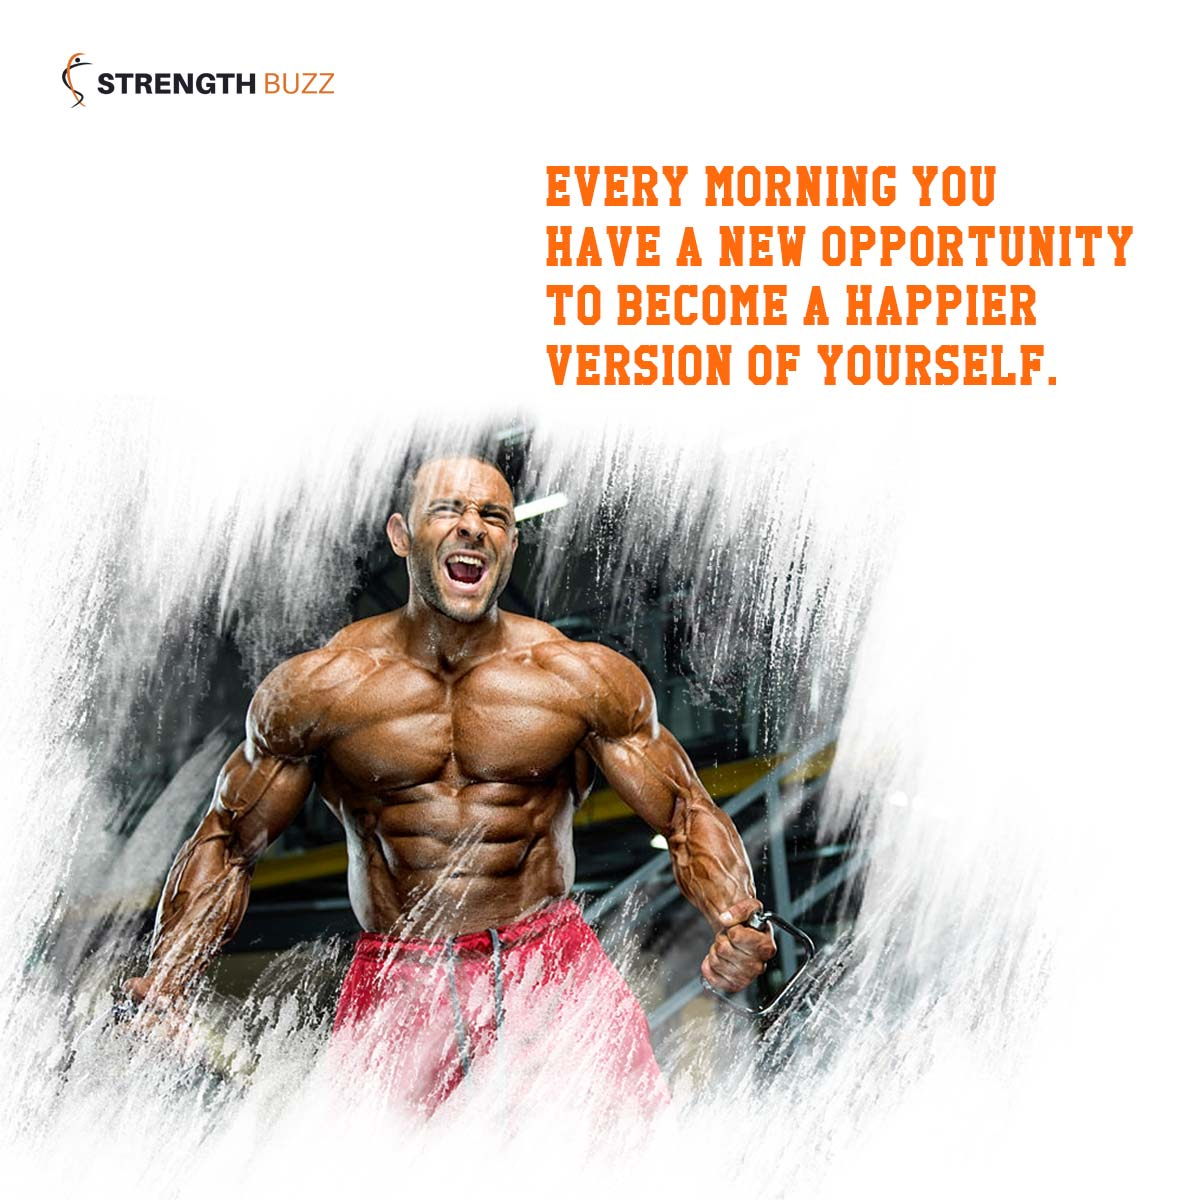 Gym Motivation Quotes - Every morning you have a new opportunity to become a happier version of yourself